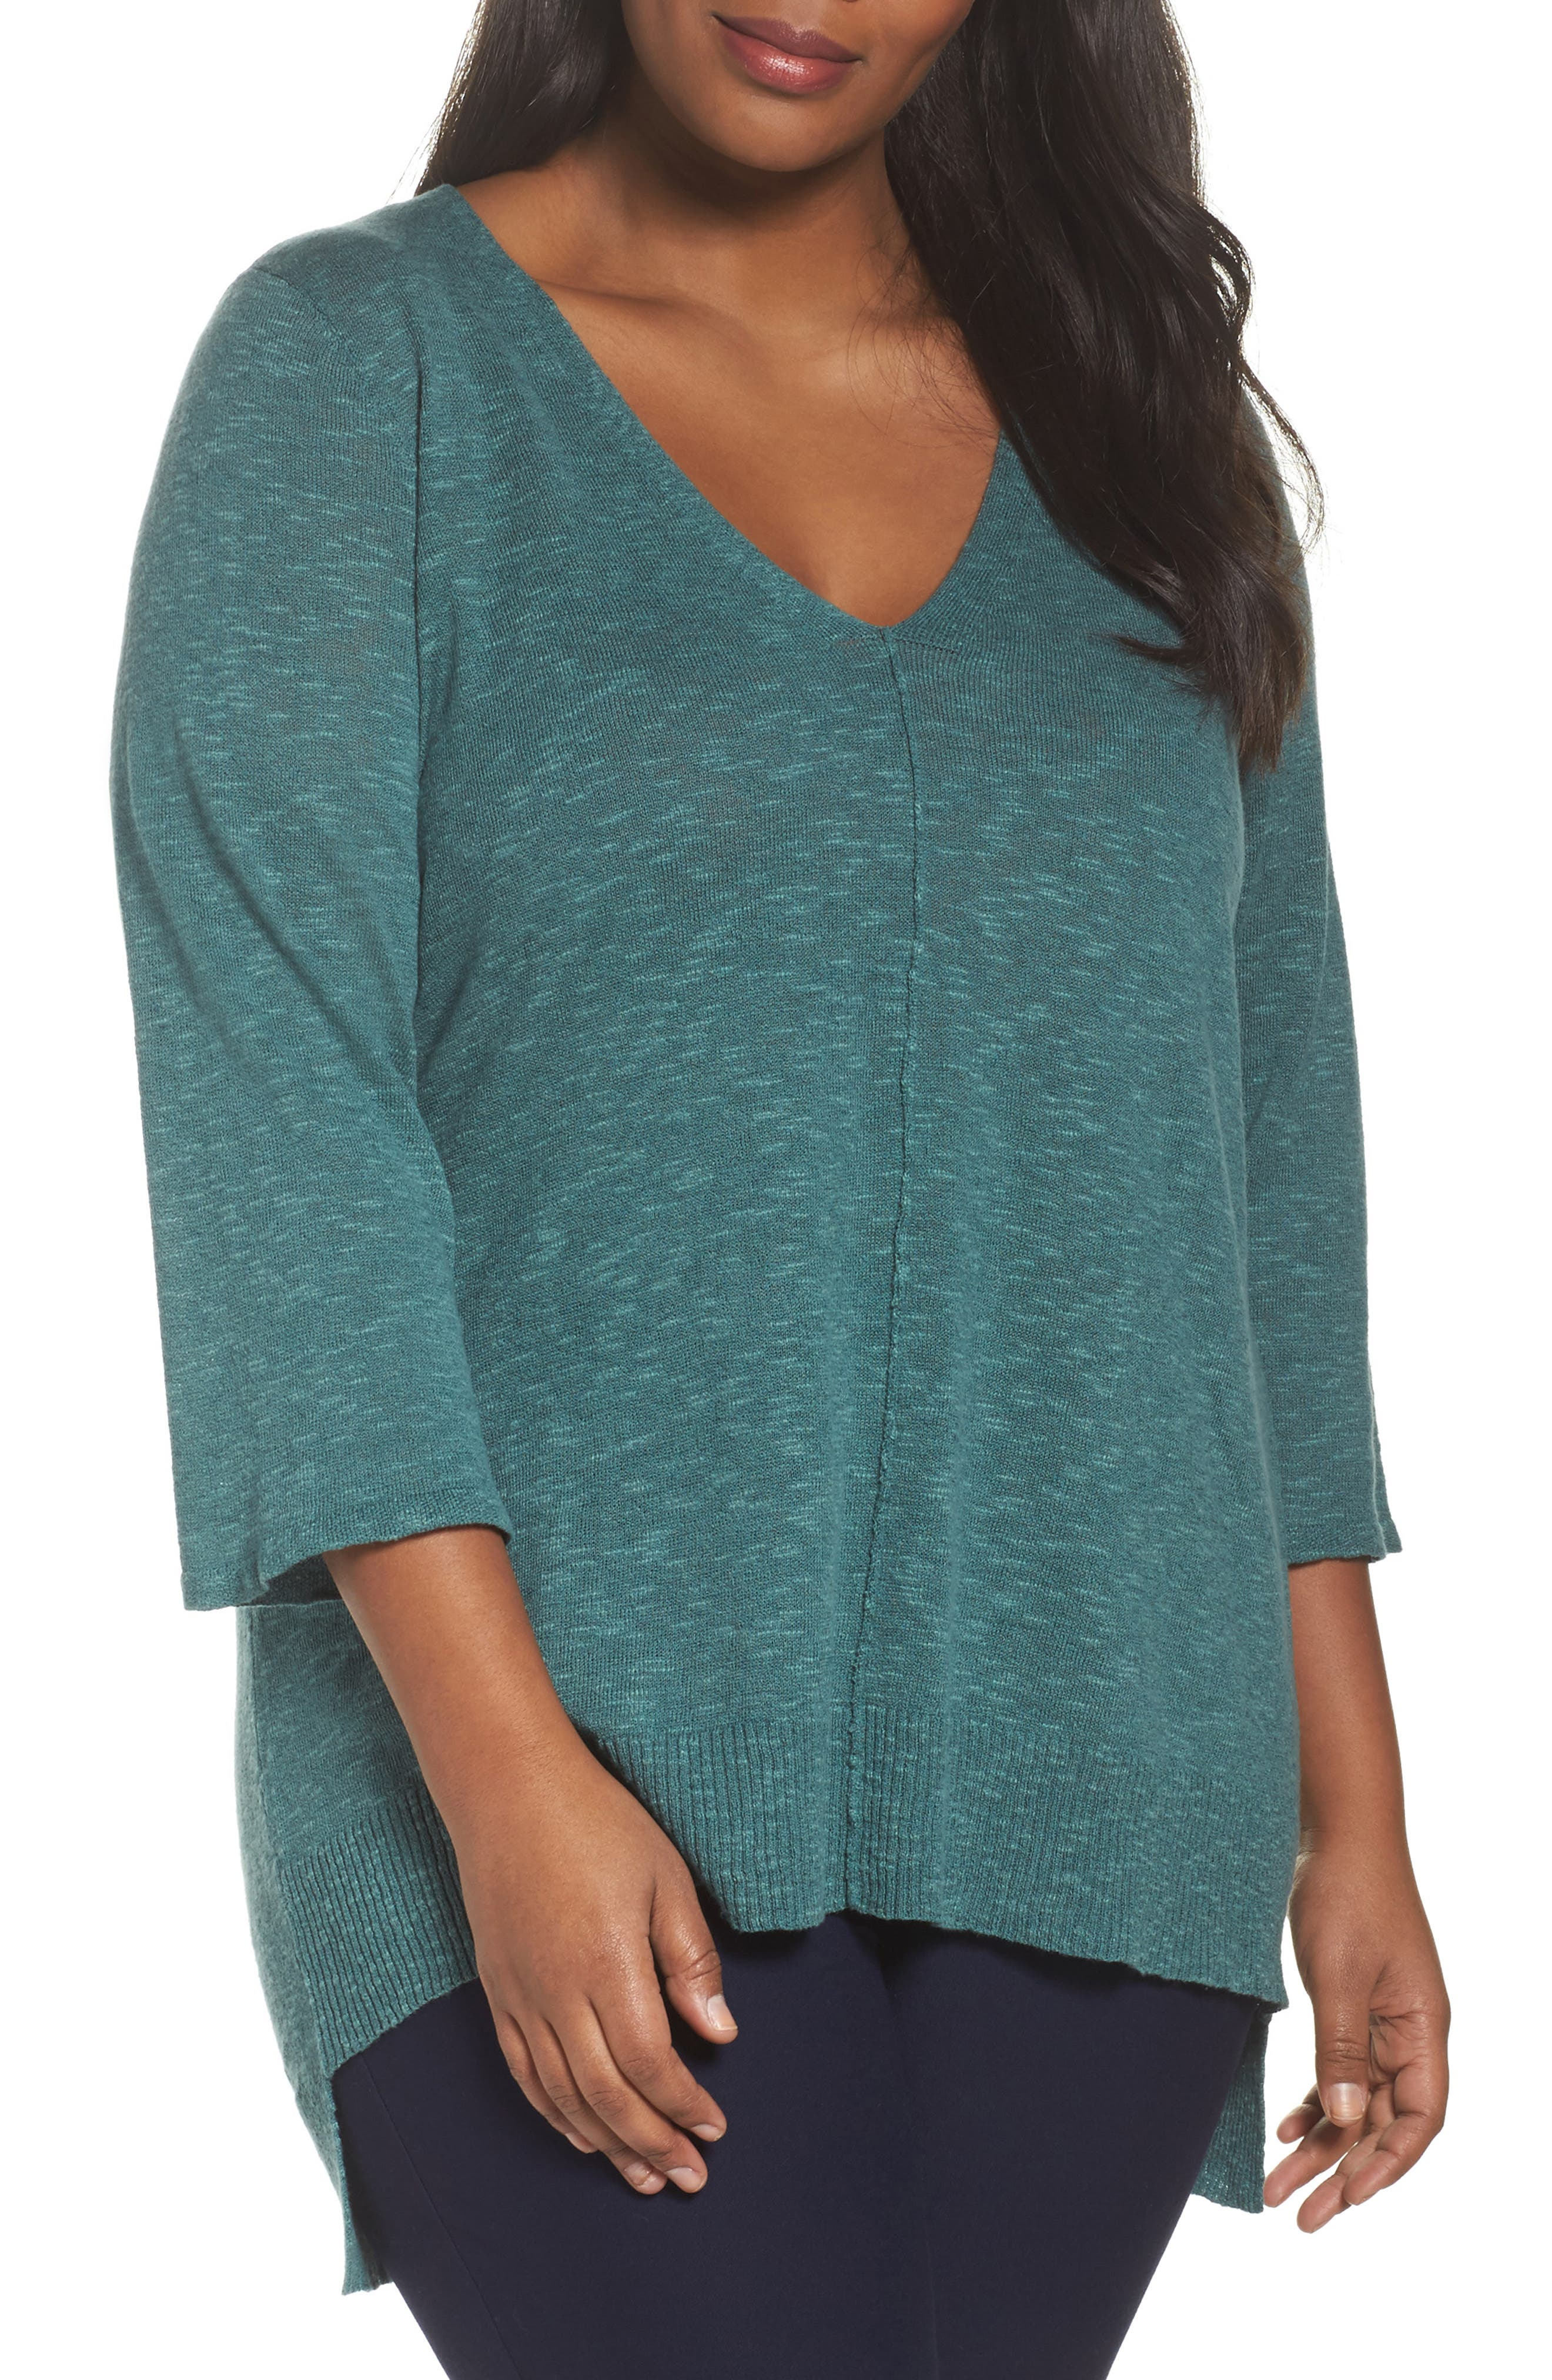 Alternate Image 1 Selected - Eileen Fisher Organic Linen & Cotton High/Low Sweater (Plus Size)